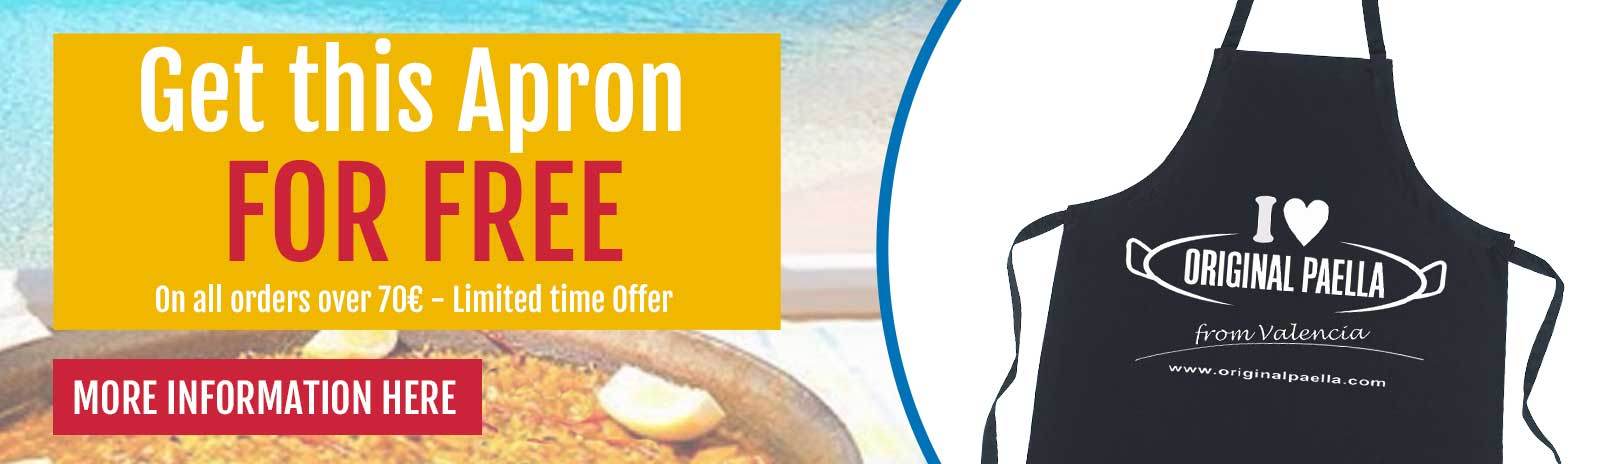 Apron Original Paella for Free